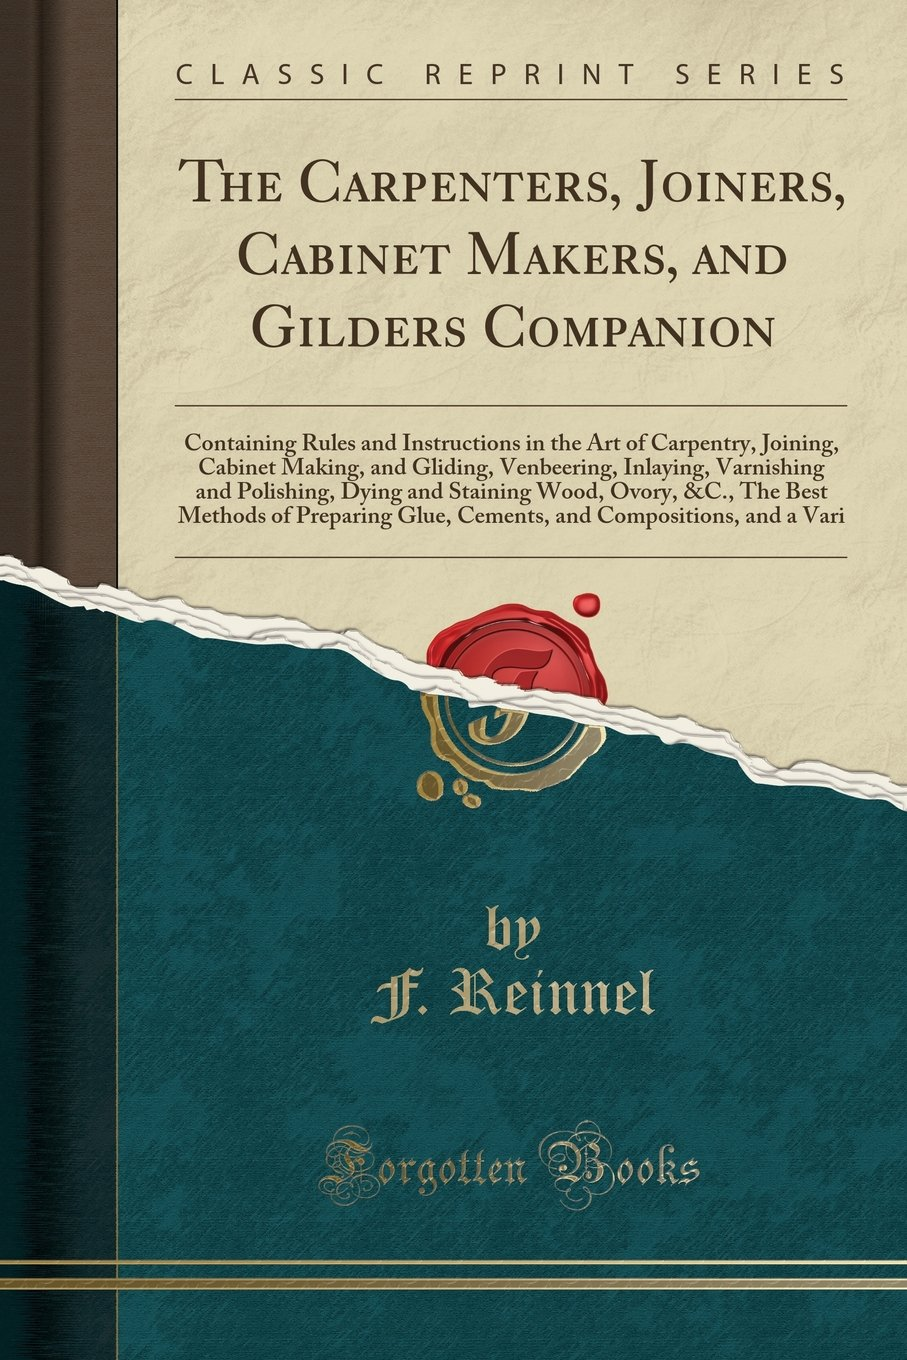 Download The Carpenters, Joiners, Cabinet Makers, and Gilders Companion: Containing Rules and Instructions in the Art of Carpentry, Joining, Cabinet Making, ... Dying and Staining Wood, Ovory, &C., The Best PDF ePub fb2 book